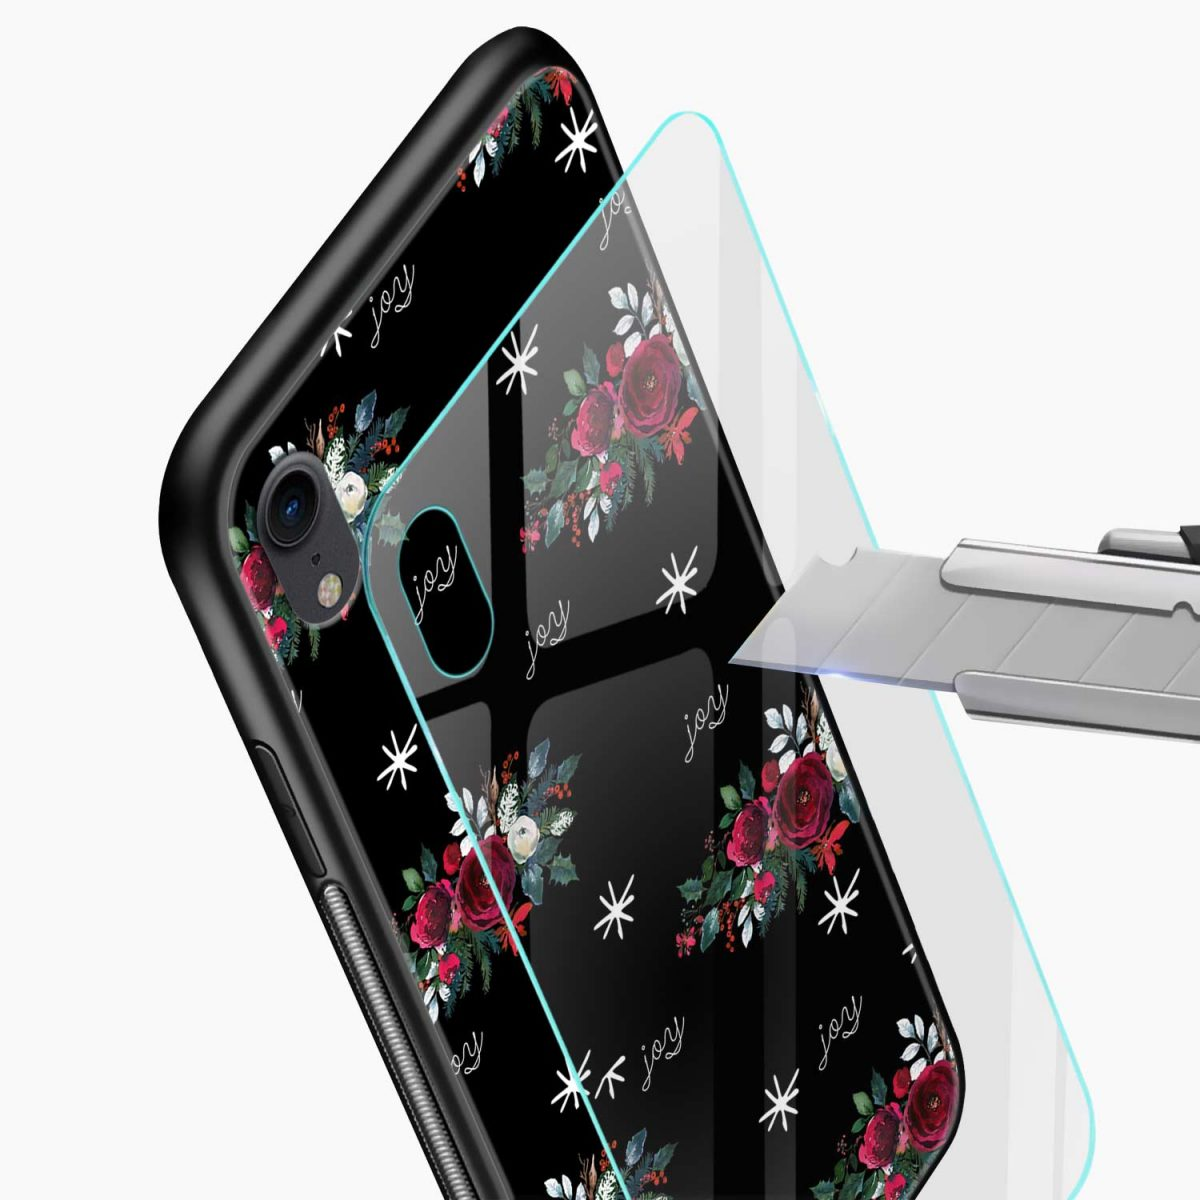 joy floral black coloured apple iphone xr back cover glass view